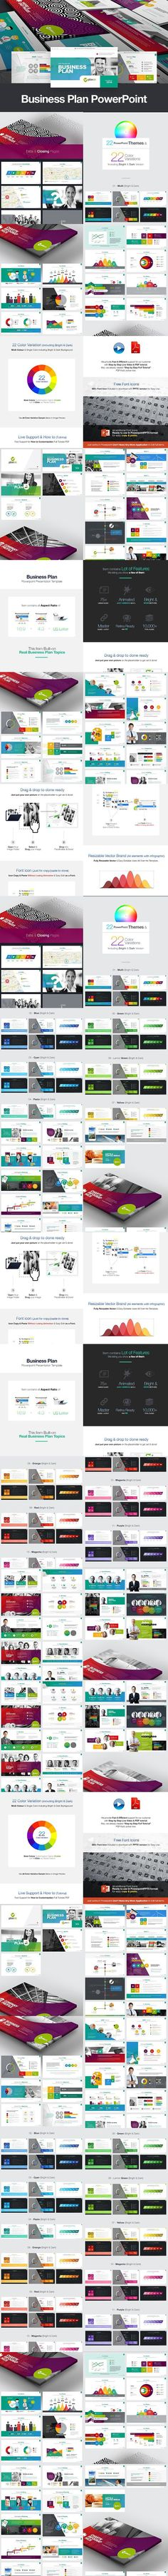 Business Plan Powerpoint. Graphic Design Infographics